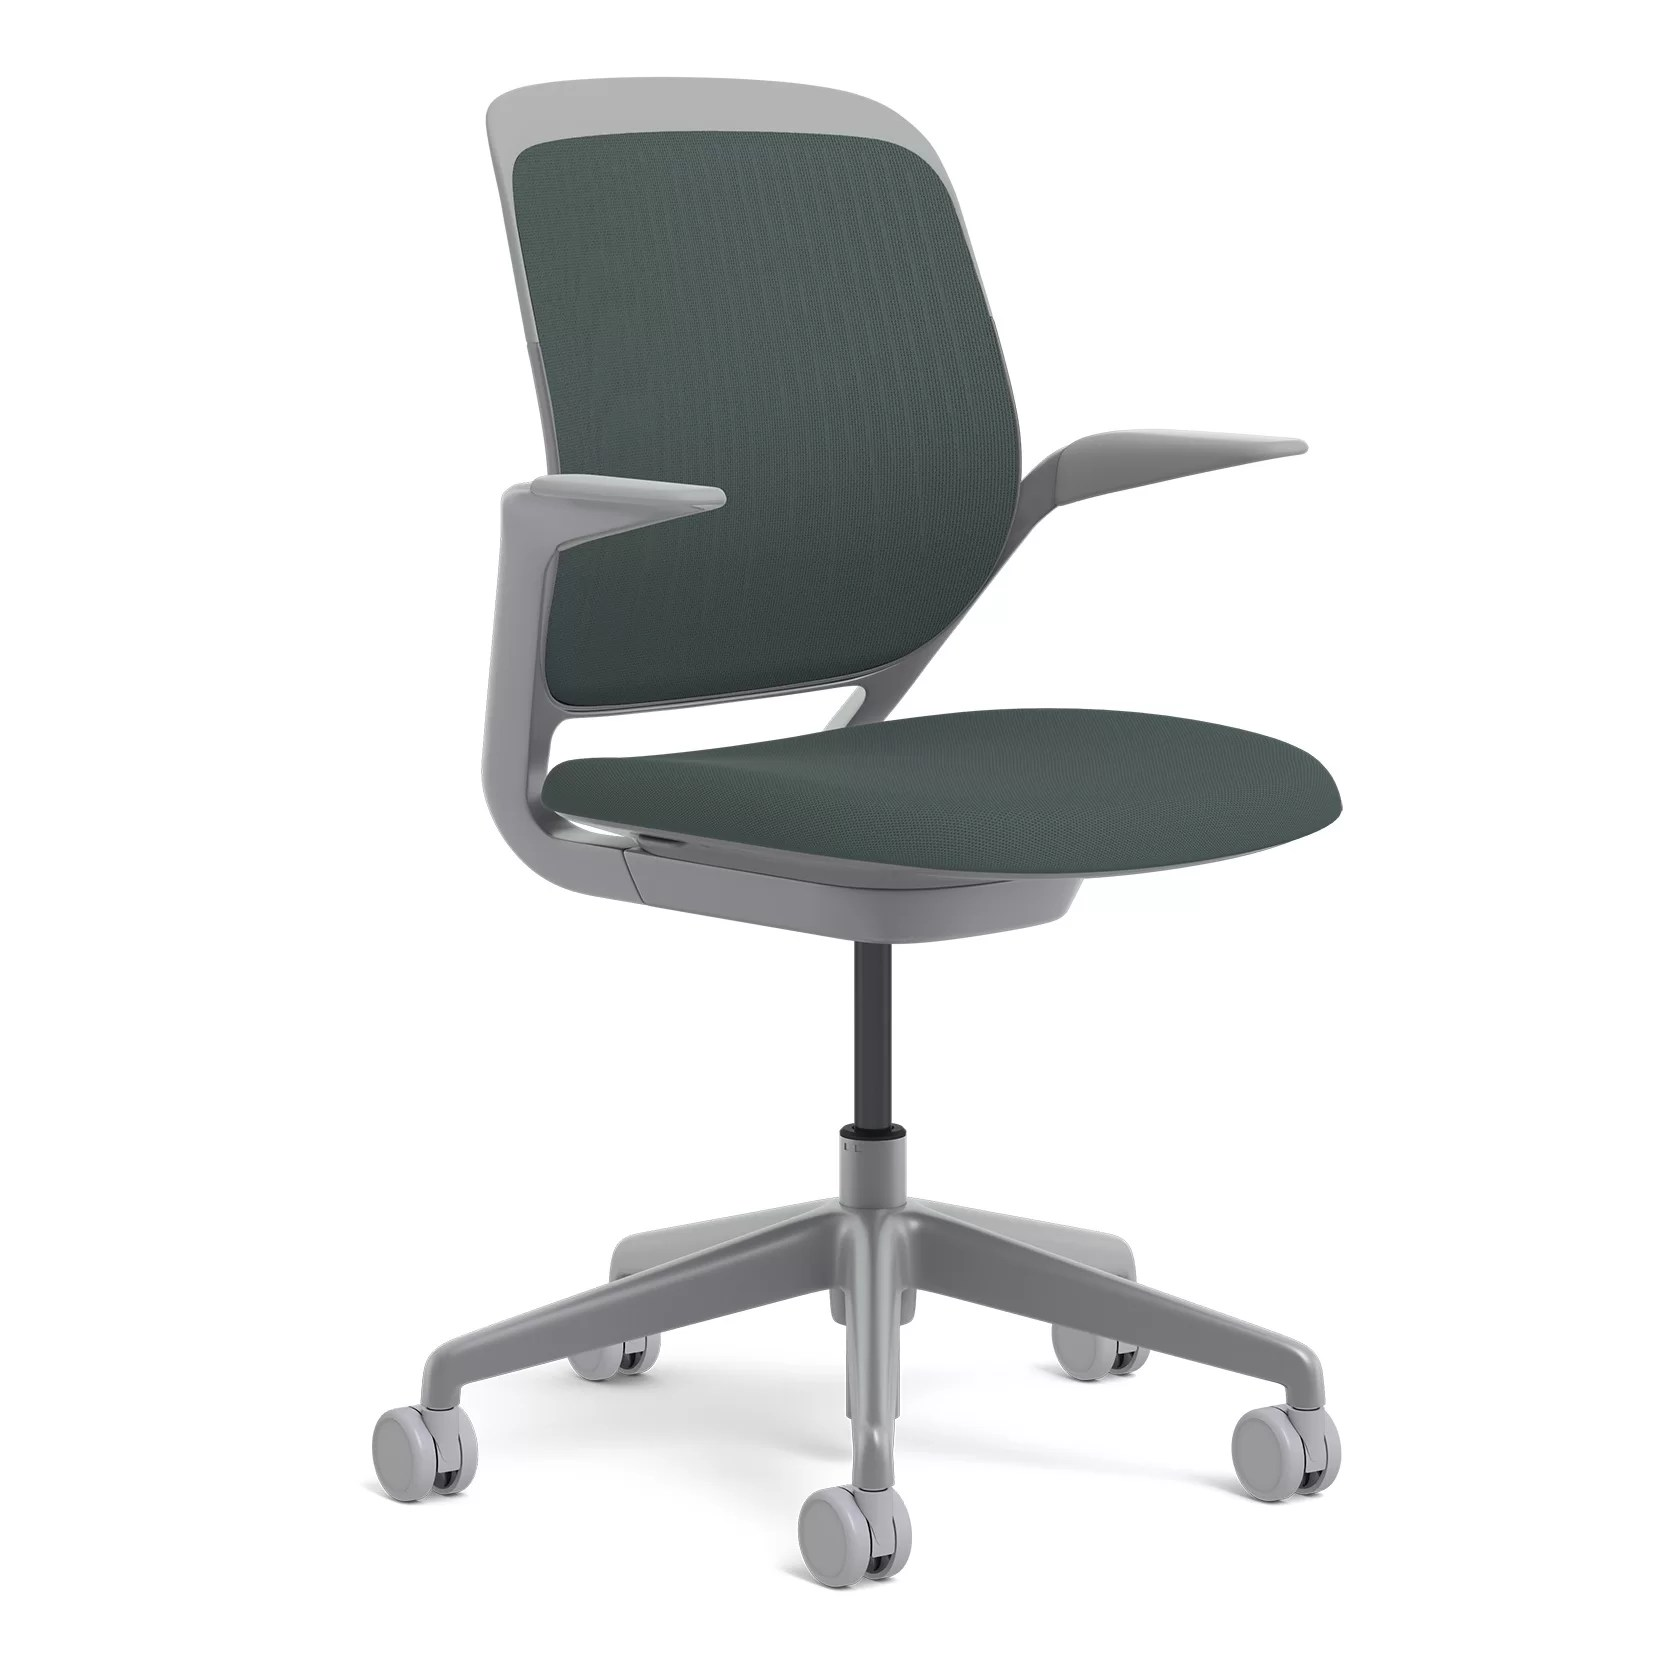 Steelcase Chair Steelcase Cobi Mid Back Desk Chair And Reviews Wayfair